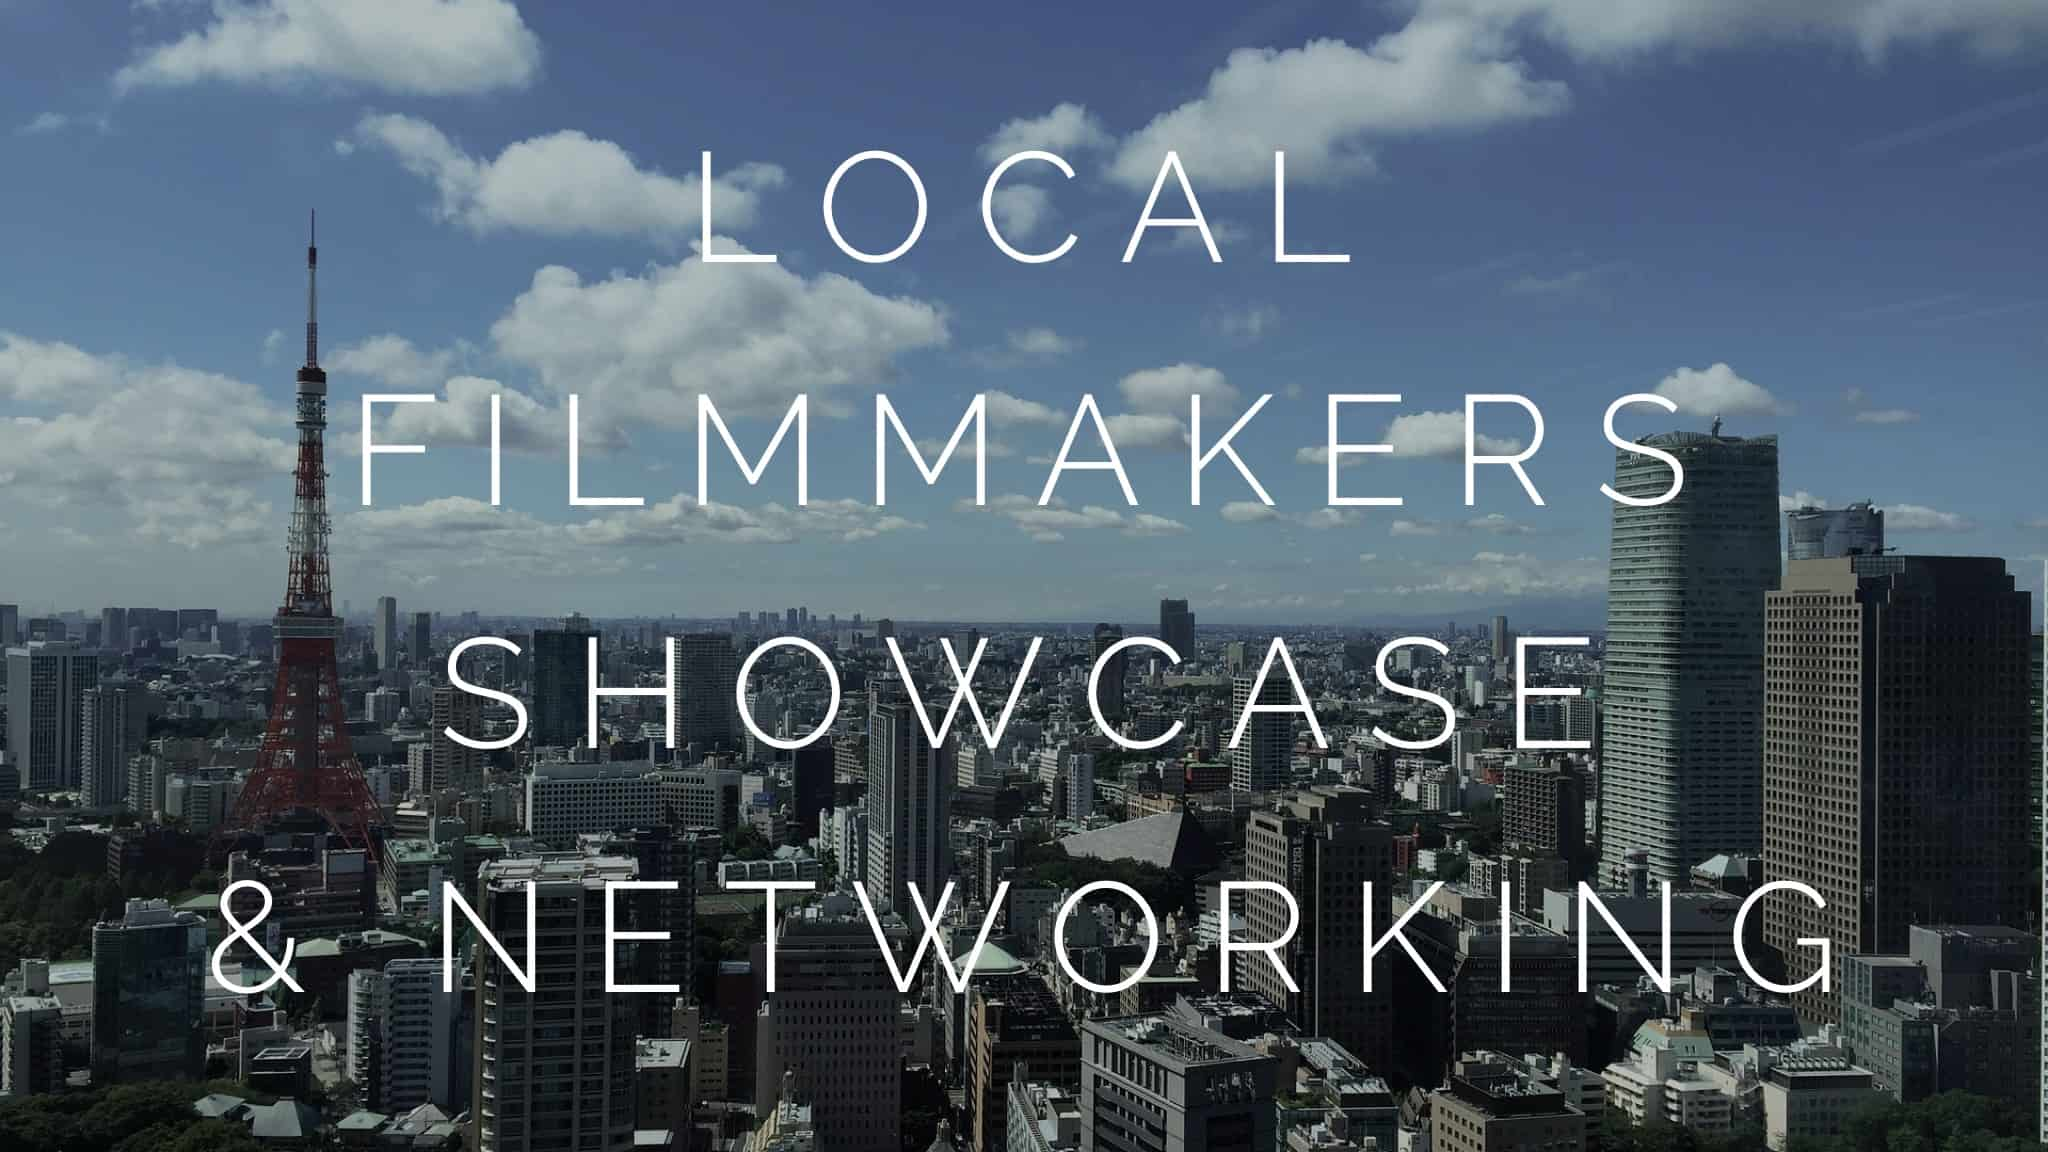 A photograph of the city of Tokyo to signify the local filmmakers showcase